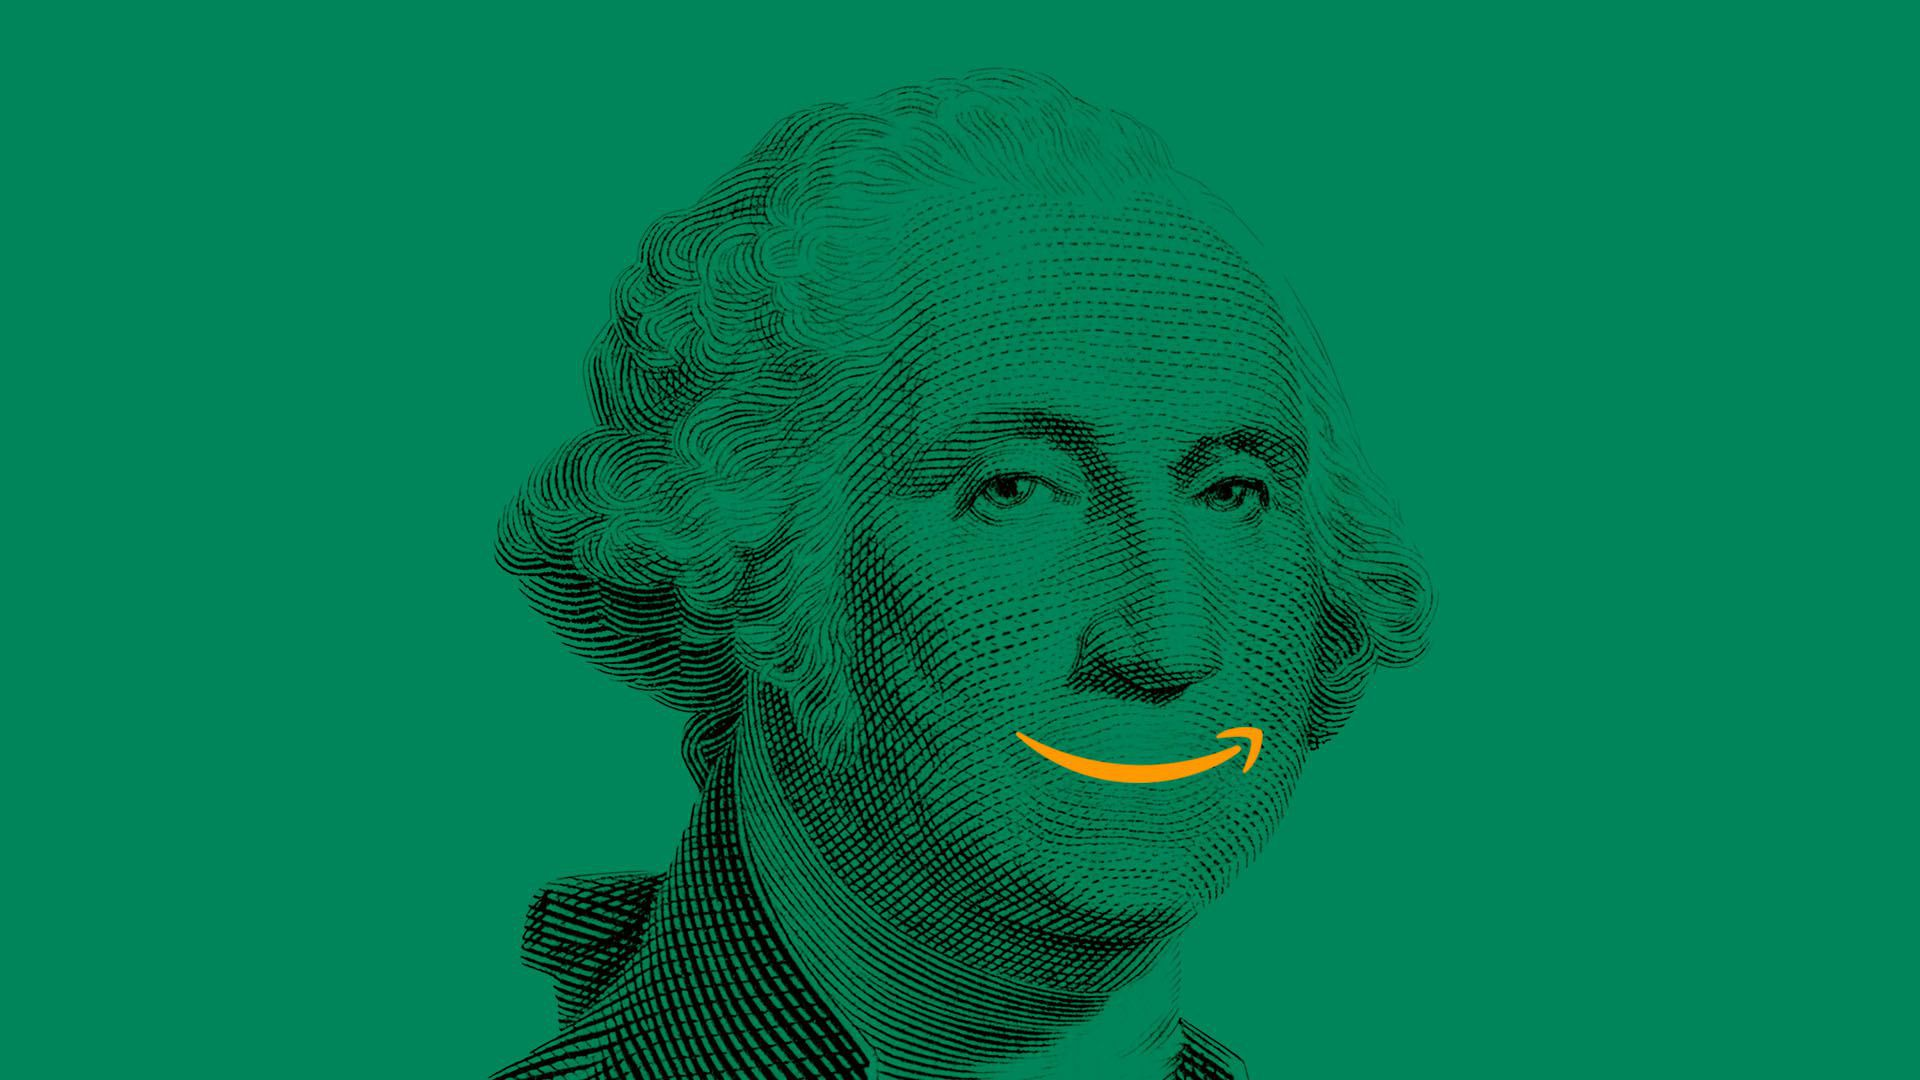 An illustration of George Washington with an Amazon smile logo as his mouth.